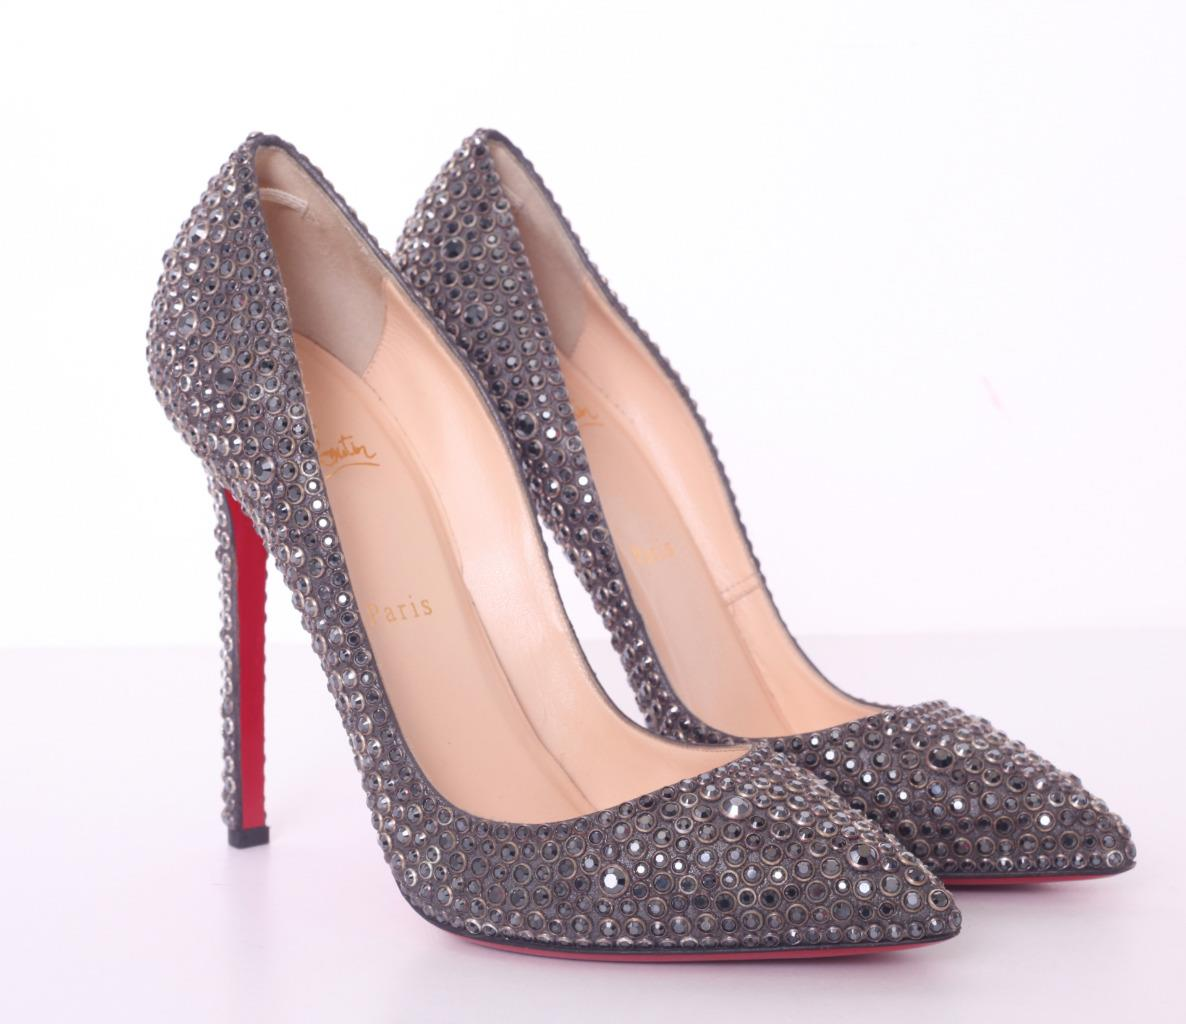 7df79c3c2c1 Details about CHRISTIAN LOUBOUTIN Gray Crystal PIGALLE 120mm High Heel Pump  10-40 NEW